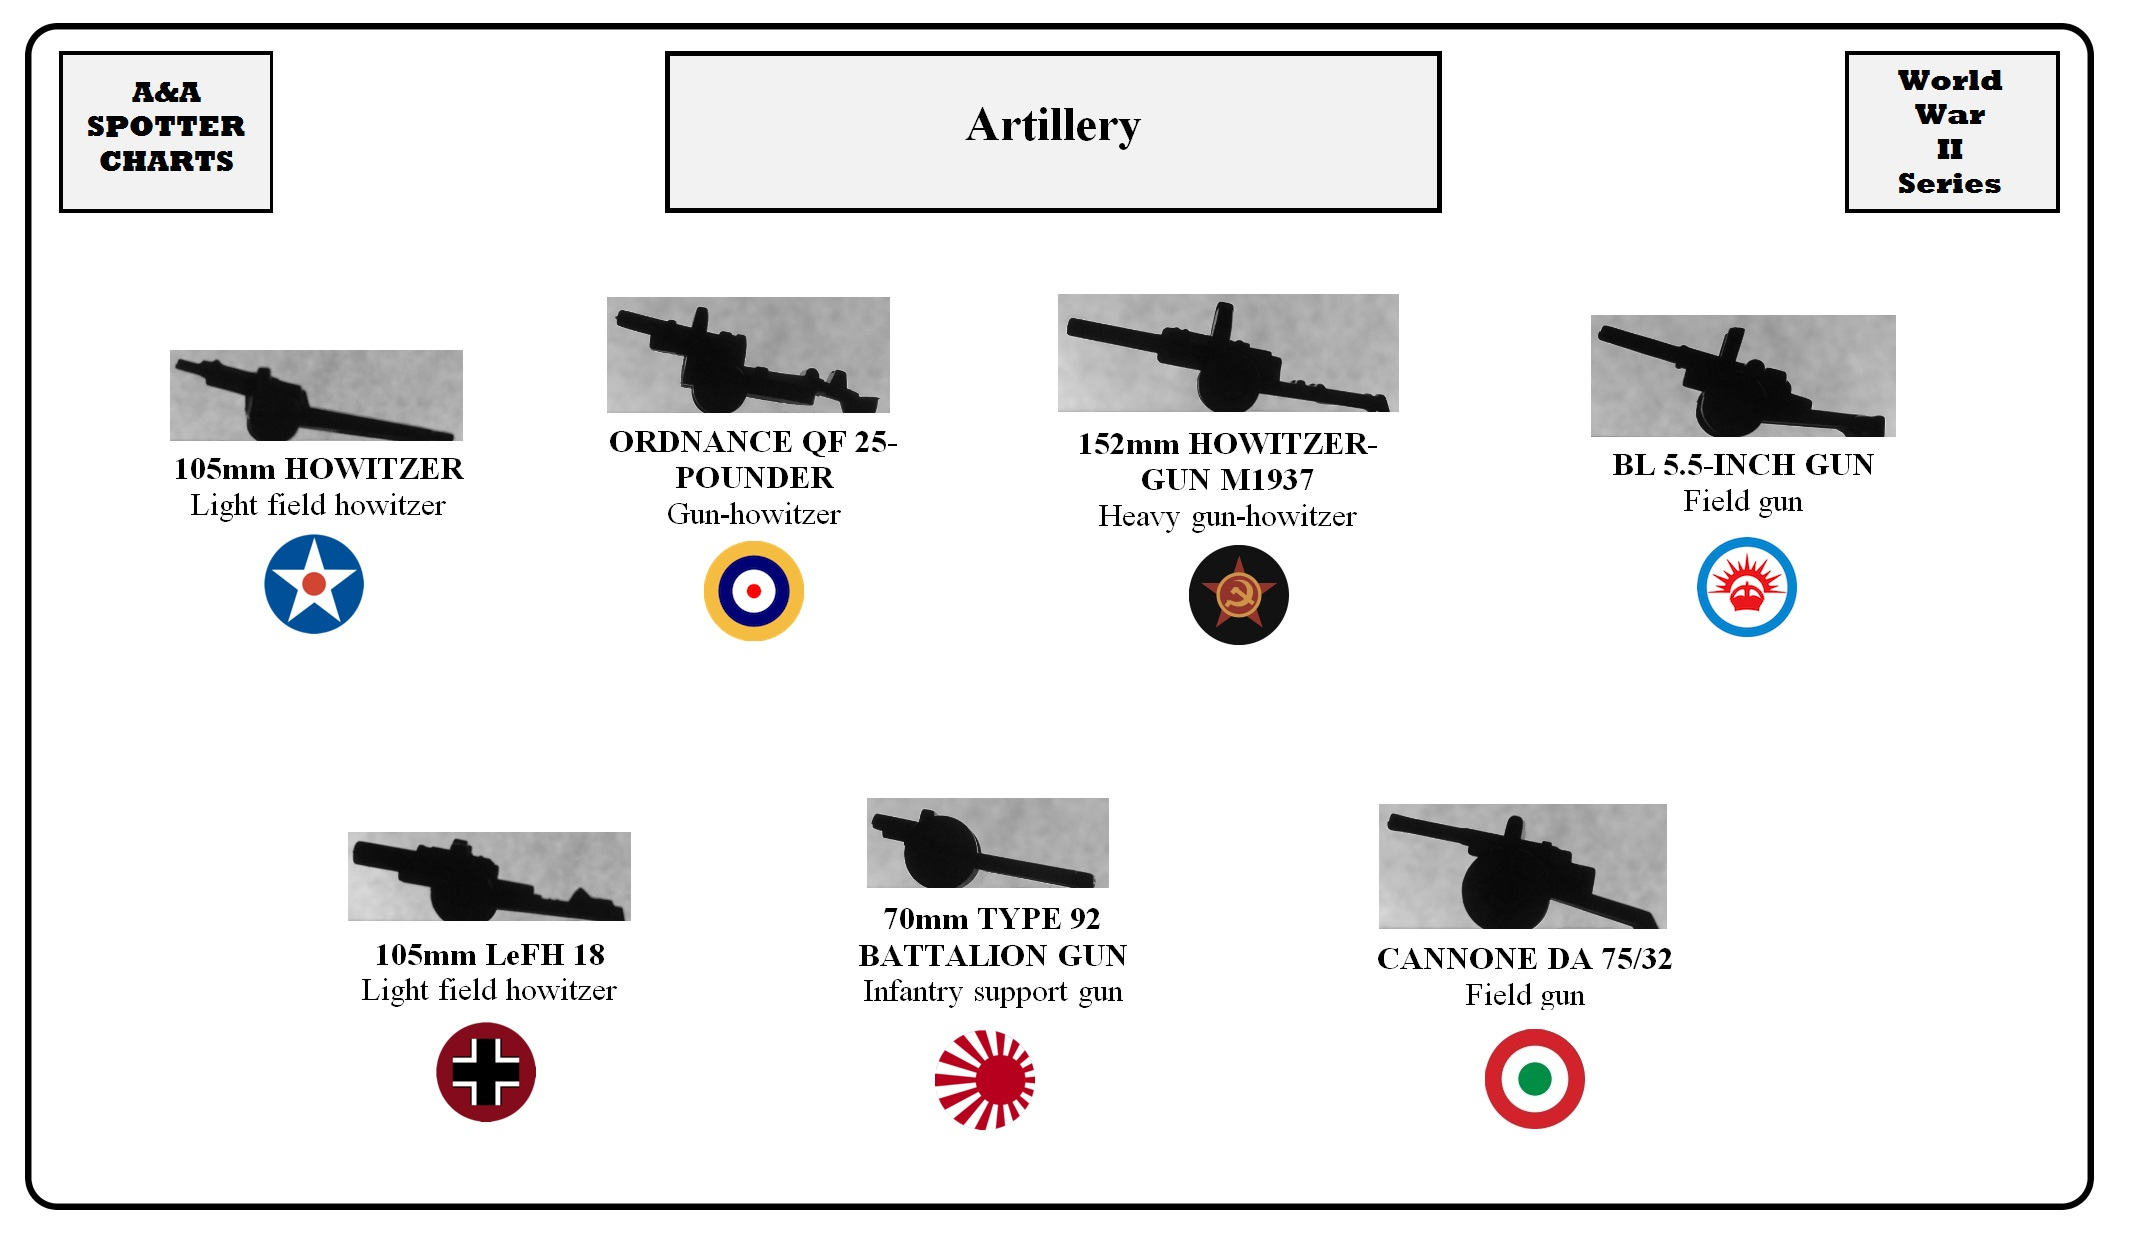 WW2-Land-Artillery.jpg